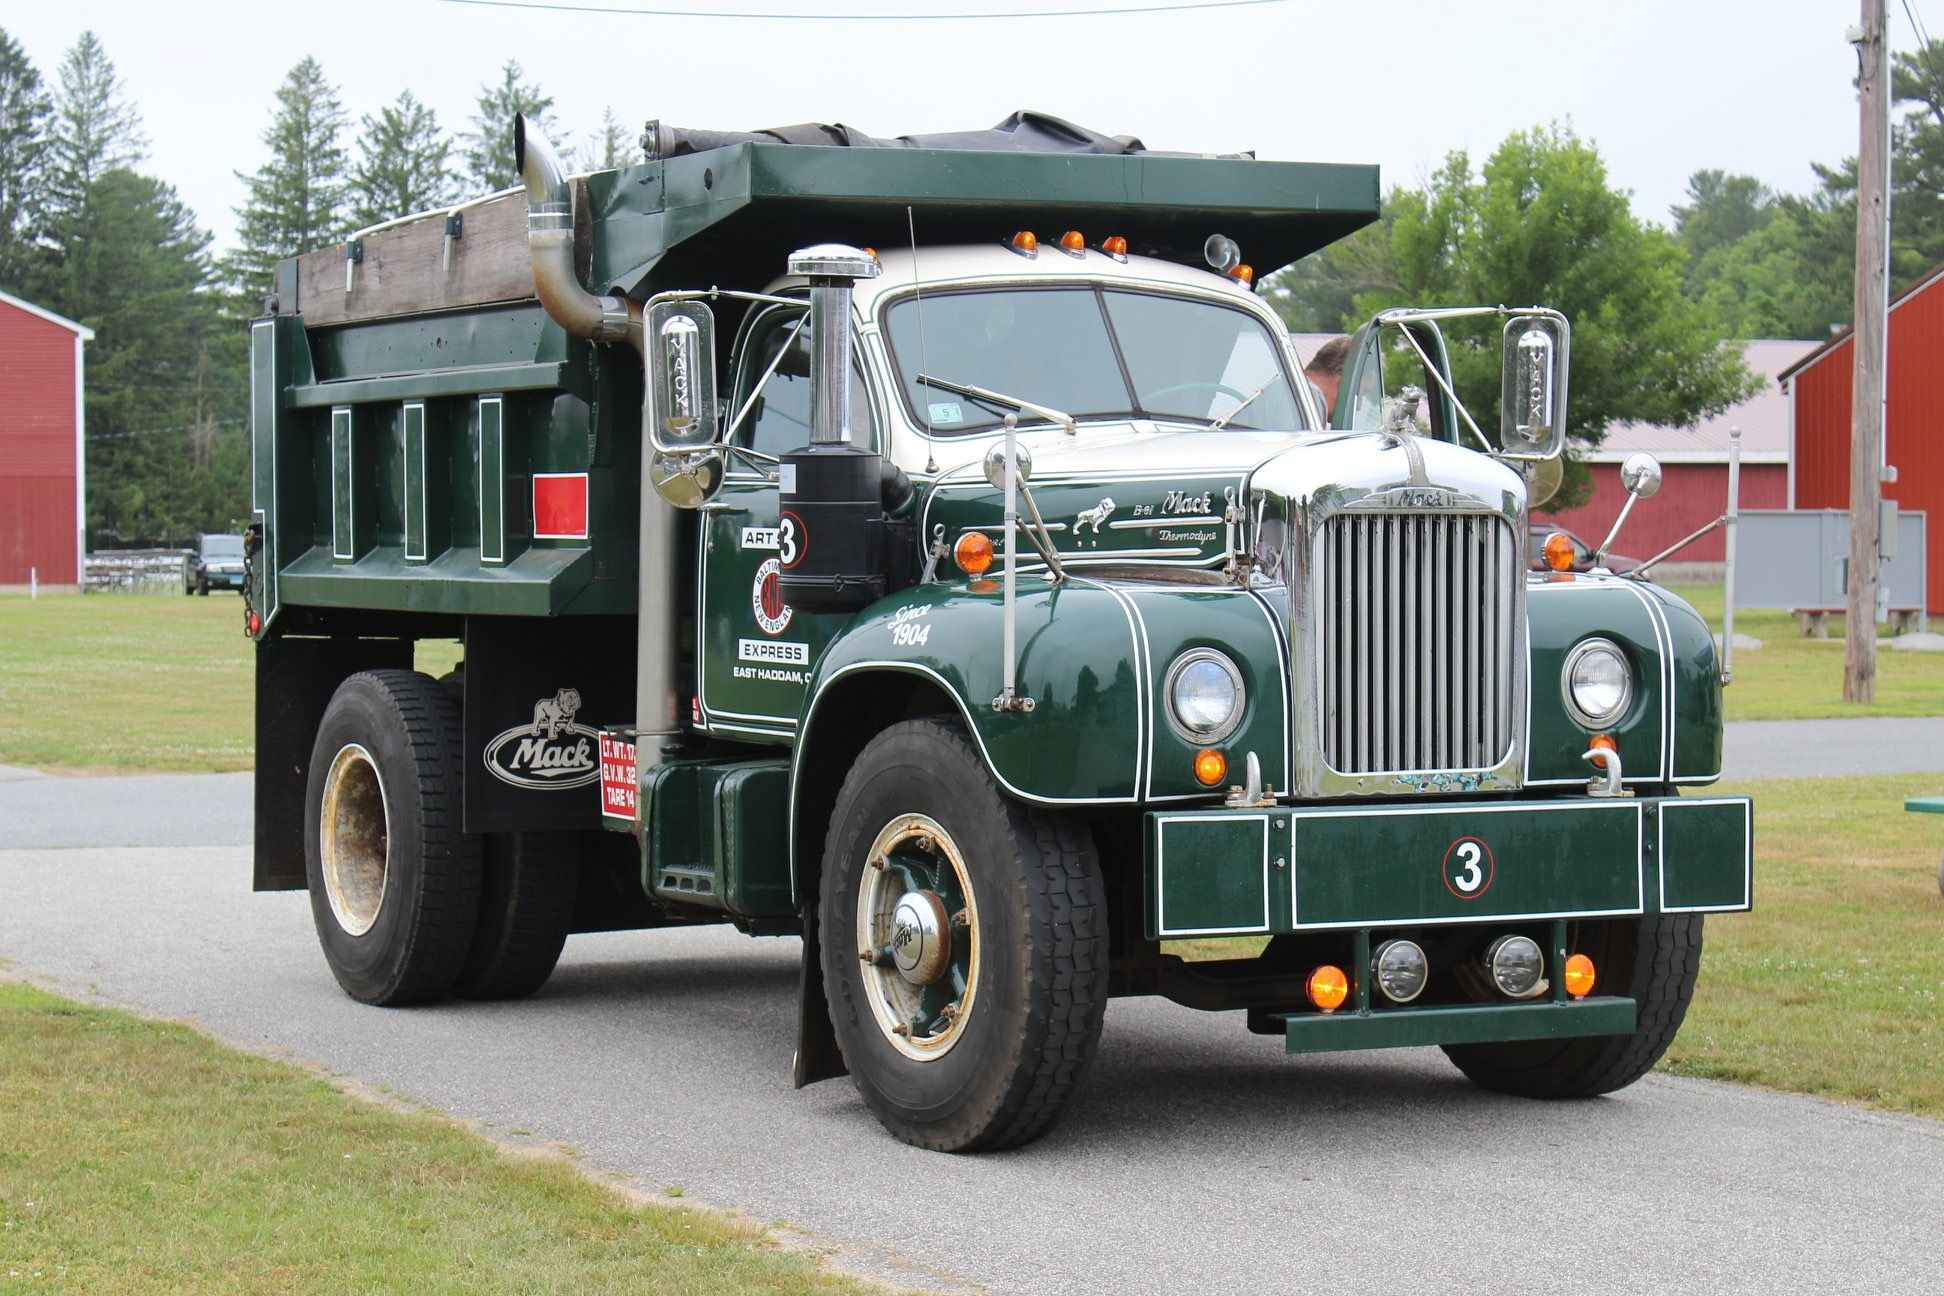 Mack B Model 6 Wheel Dump Truck With Images Mack Trucks Dump